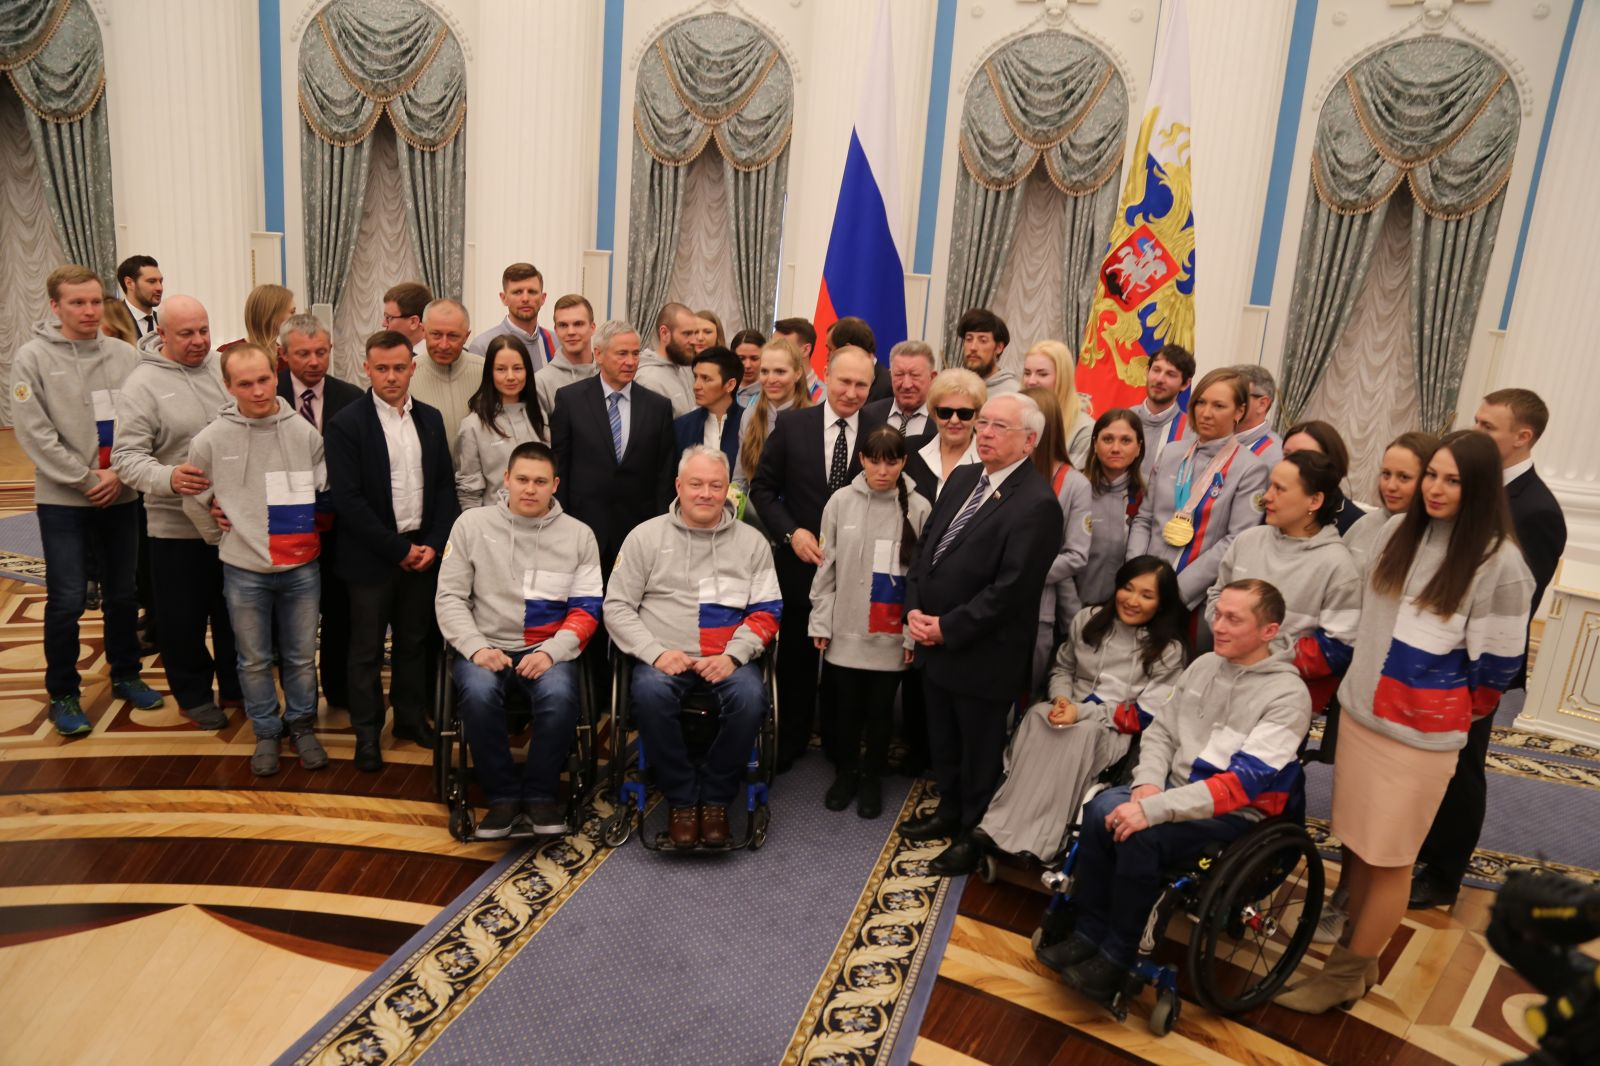 VLADIMIR PUTIN PRESENTED STATE WARDS TO RUSSIAN CAMPIONS AND MEDALISTS OF THE XII PARALYMPIC WINTER GAMES 2018 IN PYEONGCHANGE